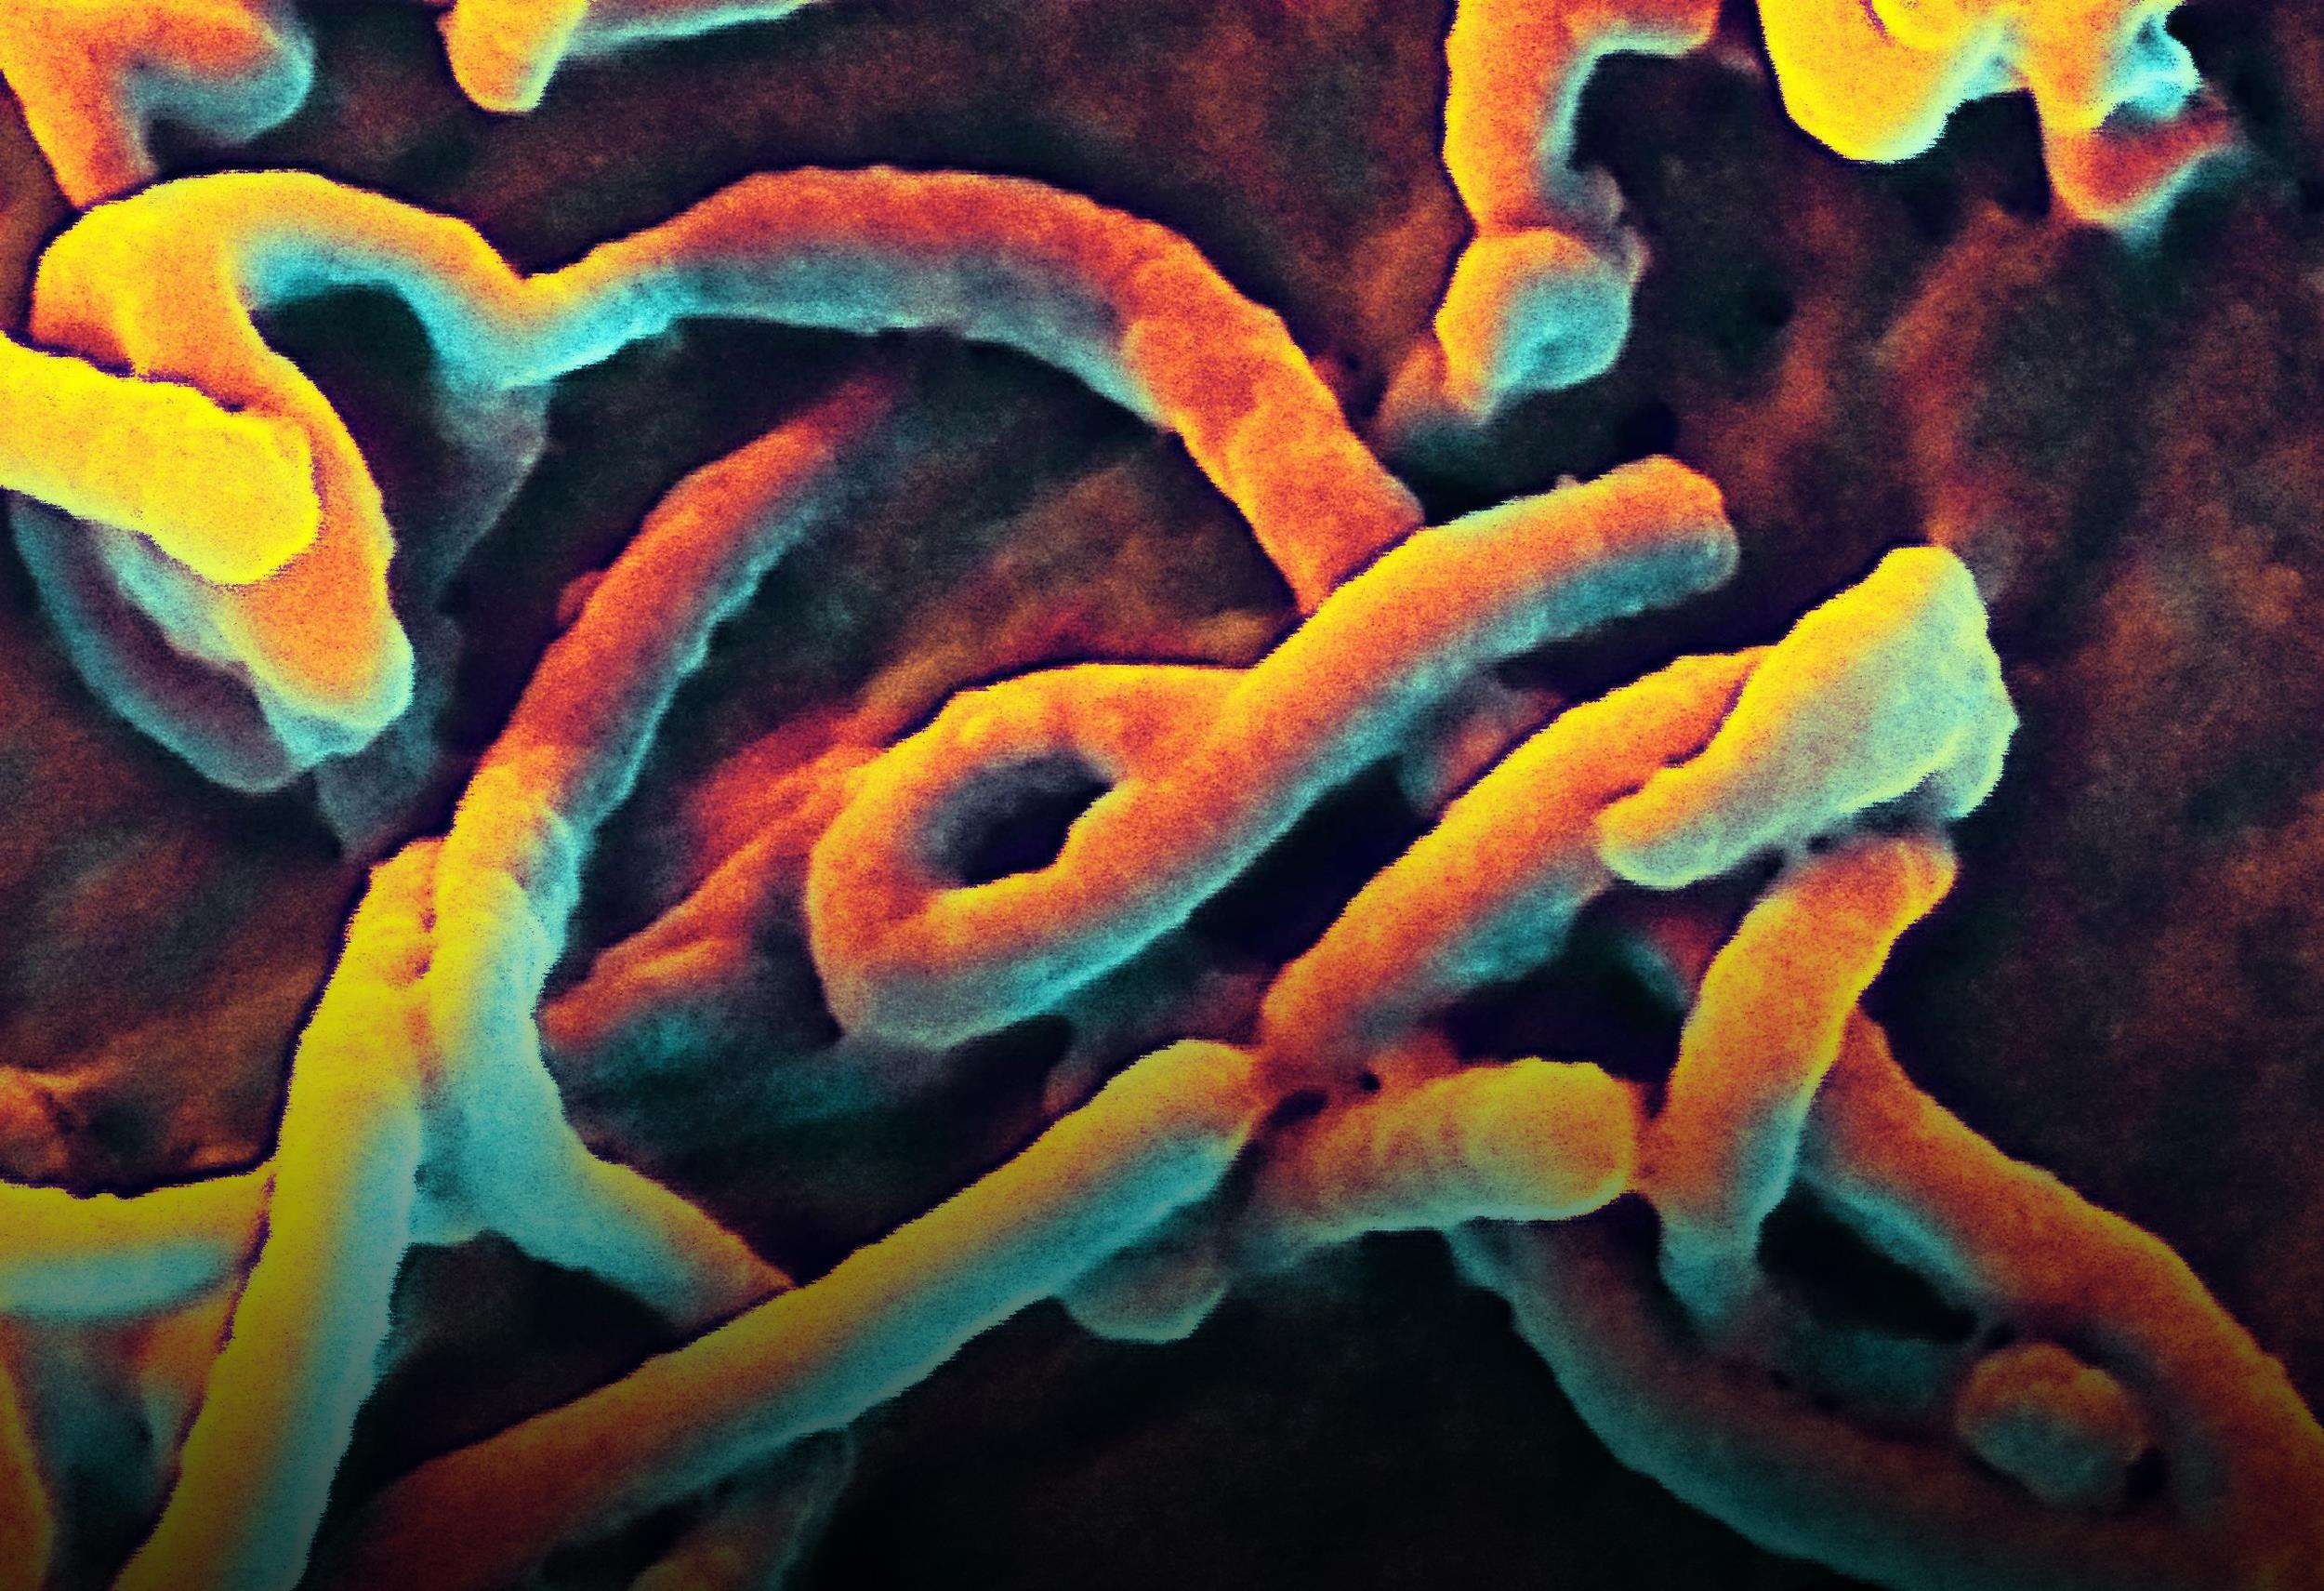 ebola virus Scientists have identified potential biomarkers in nonhuman primates exposed to ebola virus (ebov) that appeared up to four days before the onset of fever.